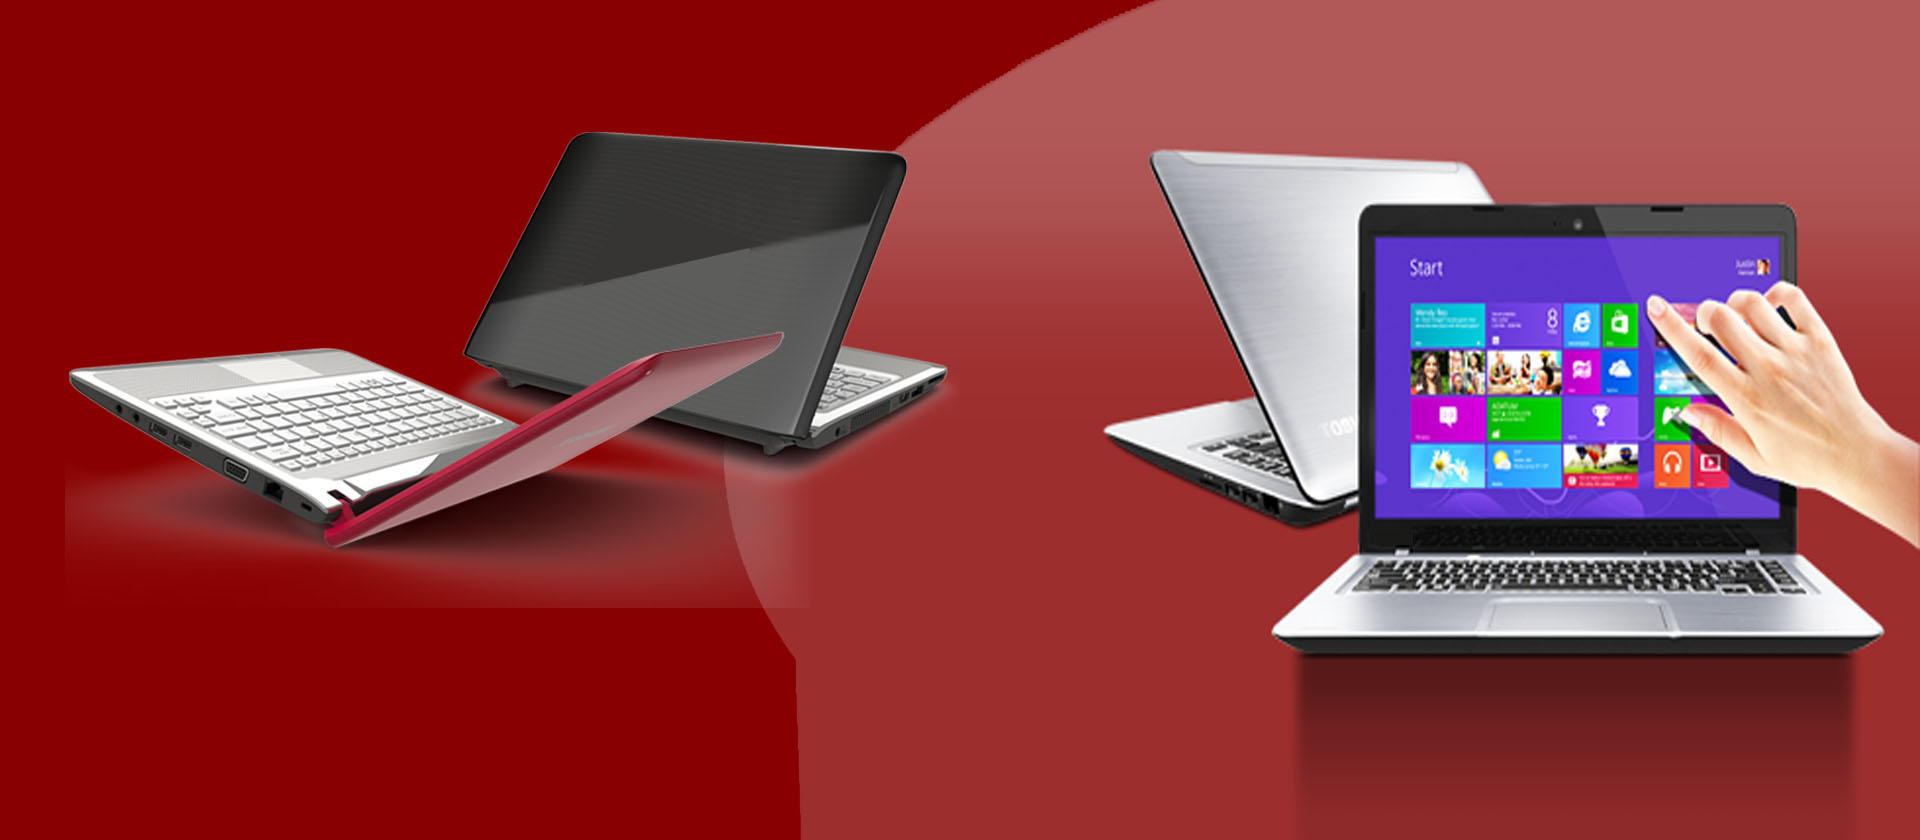 Toshiba Laptop service center in chennai